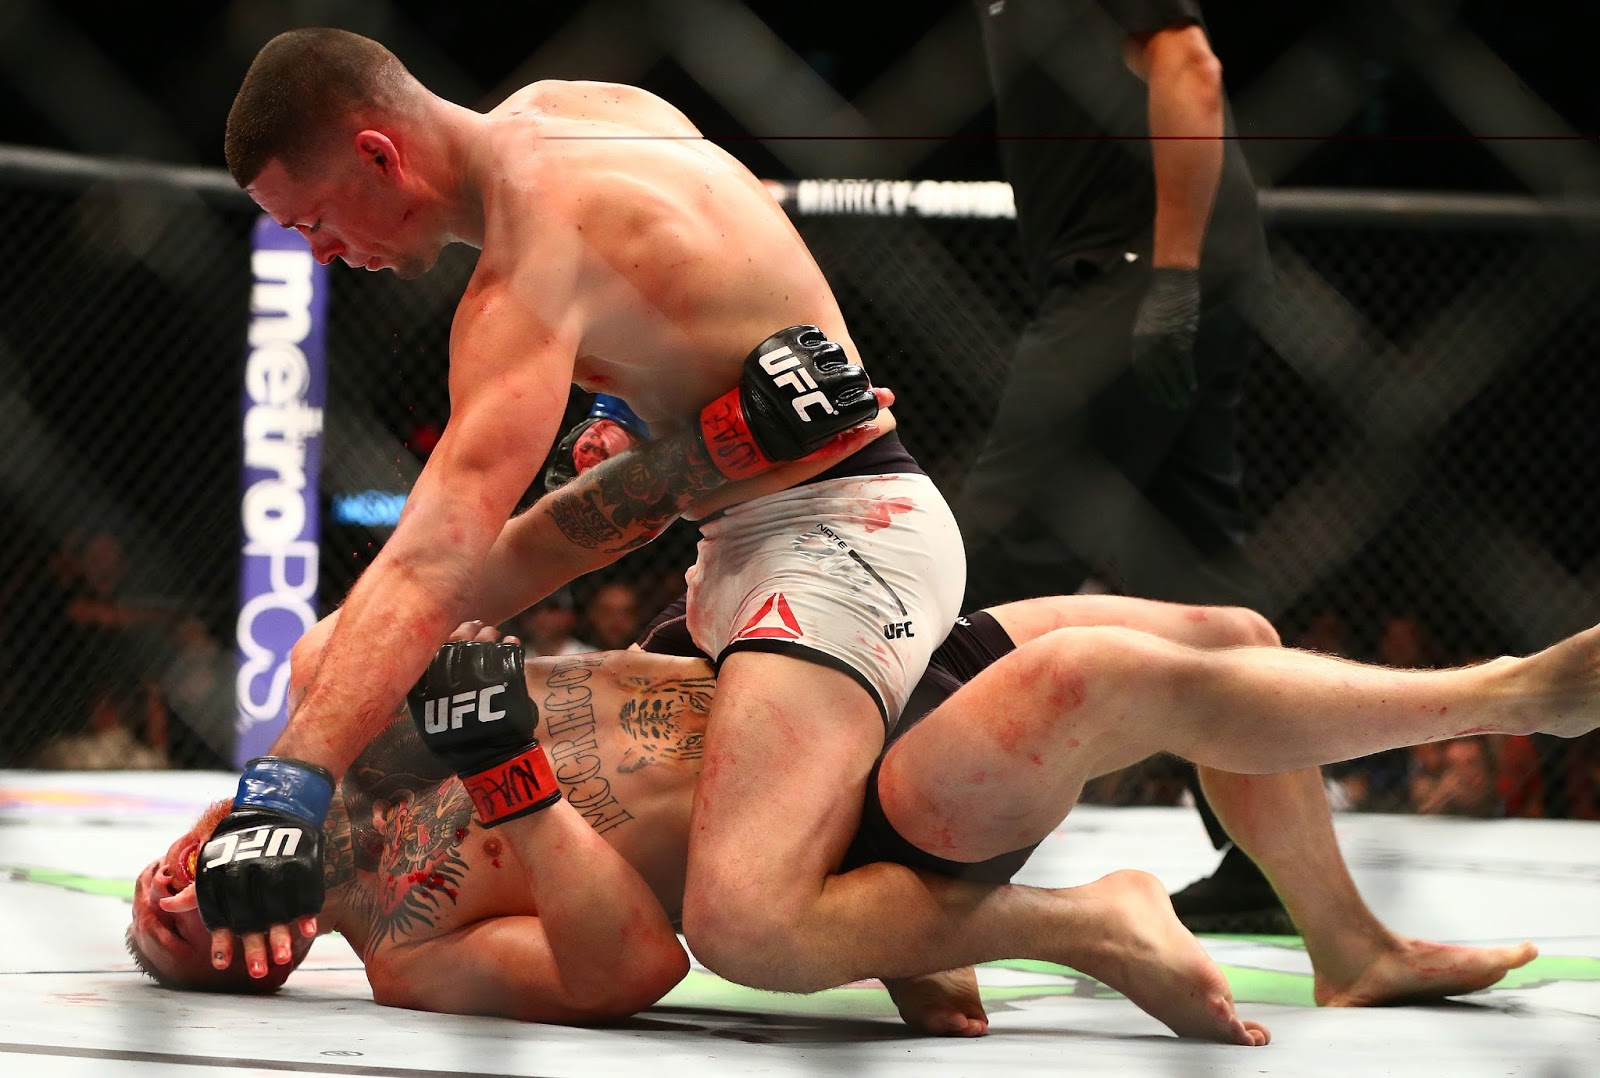 CONOR MCGREGOR VS. NATE DIAZ 15